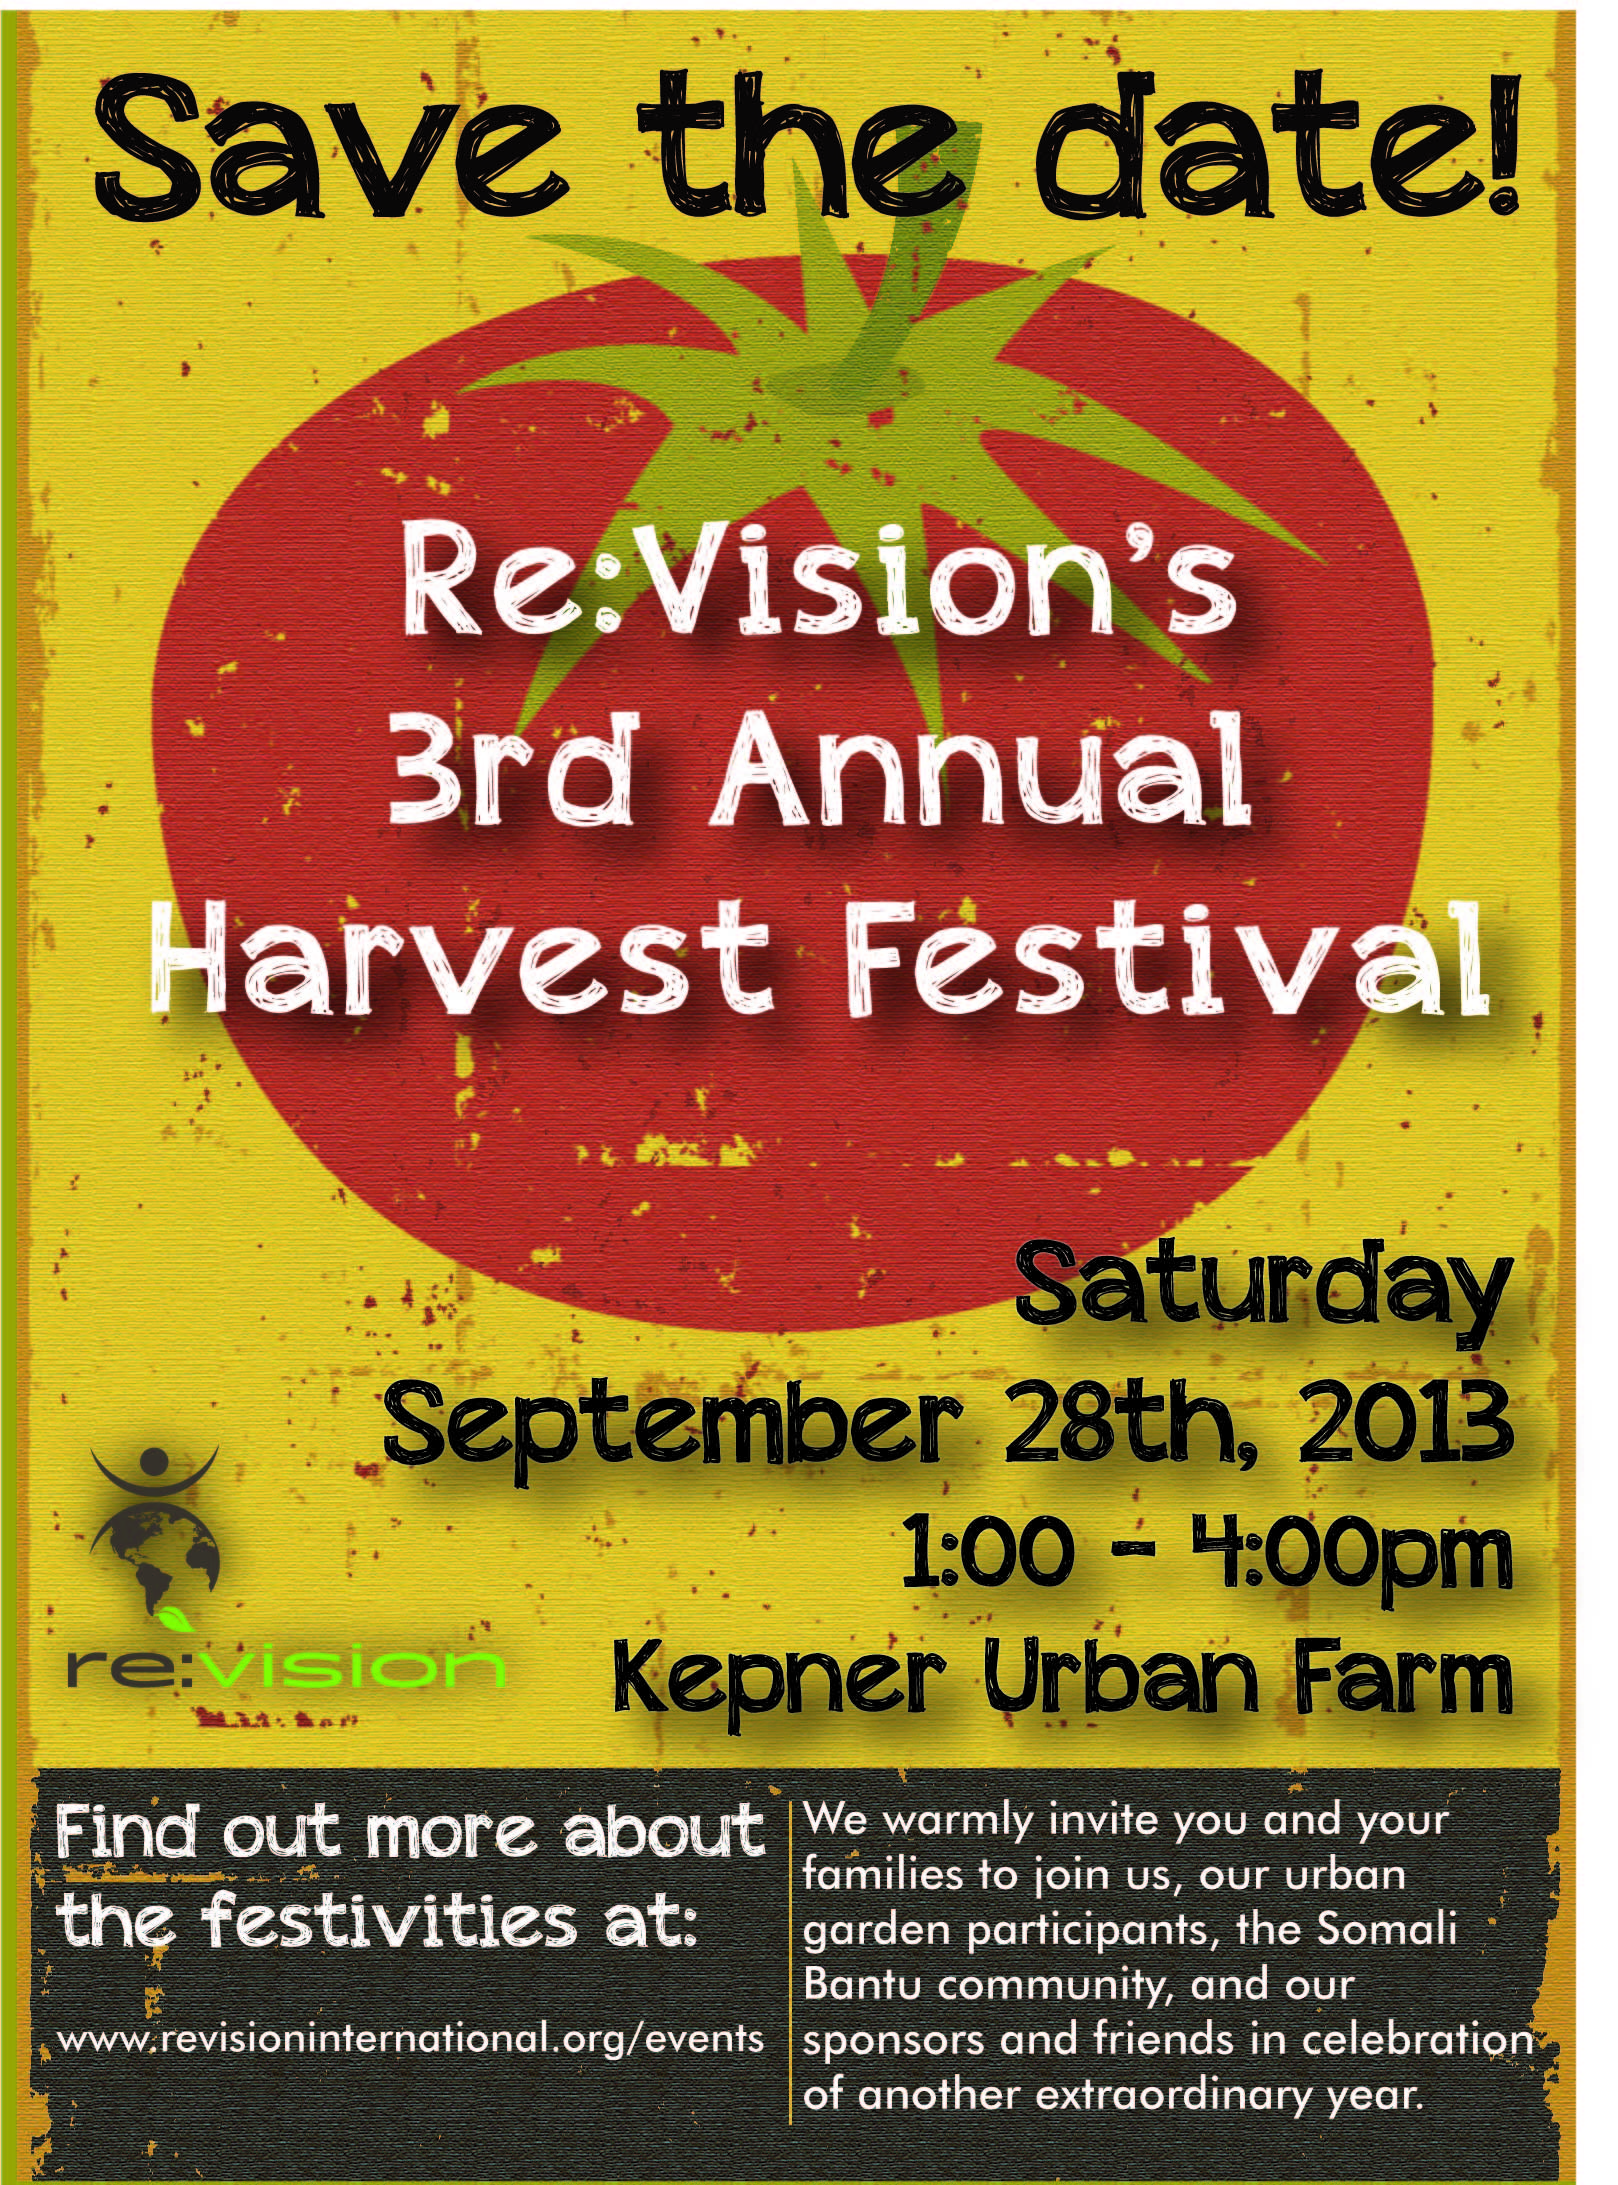 2013 Harvest Festival Save the Date-FINAL.jpg